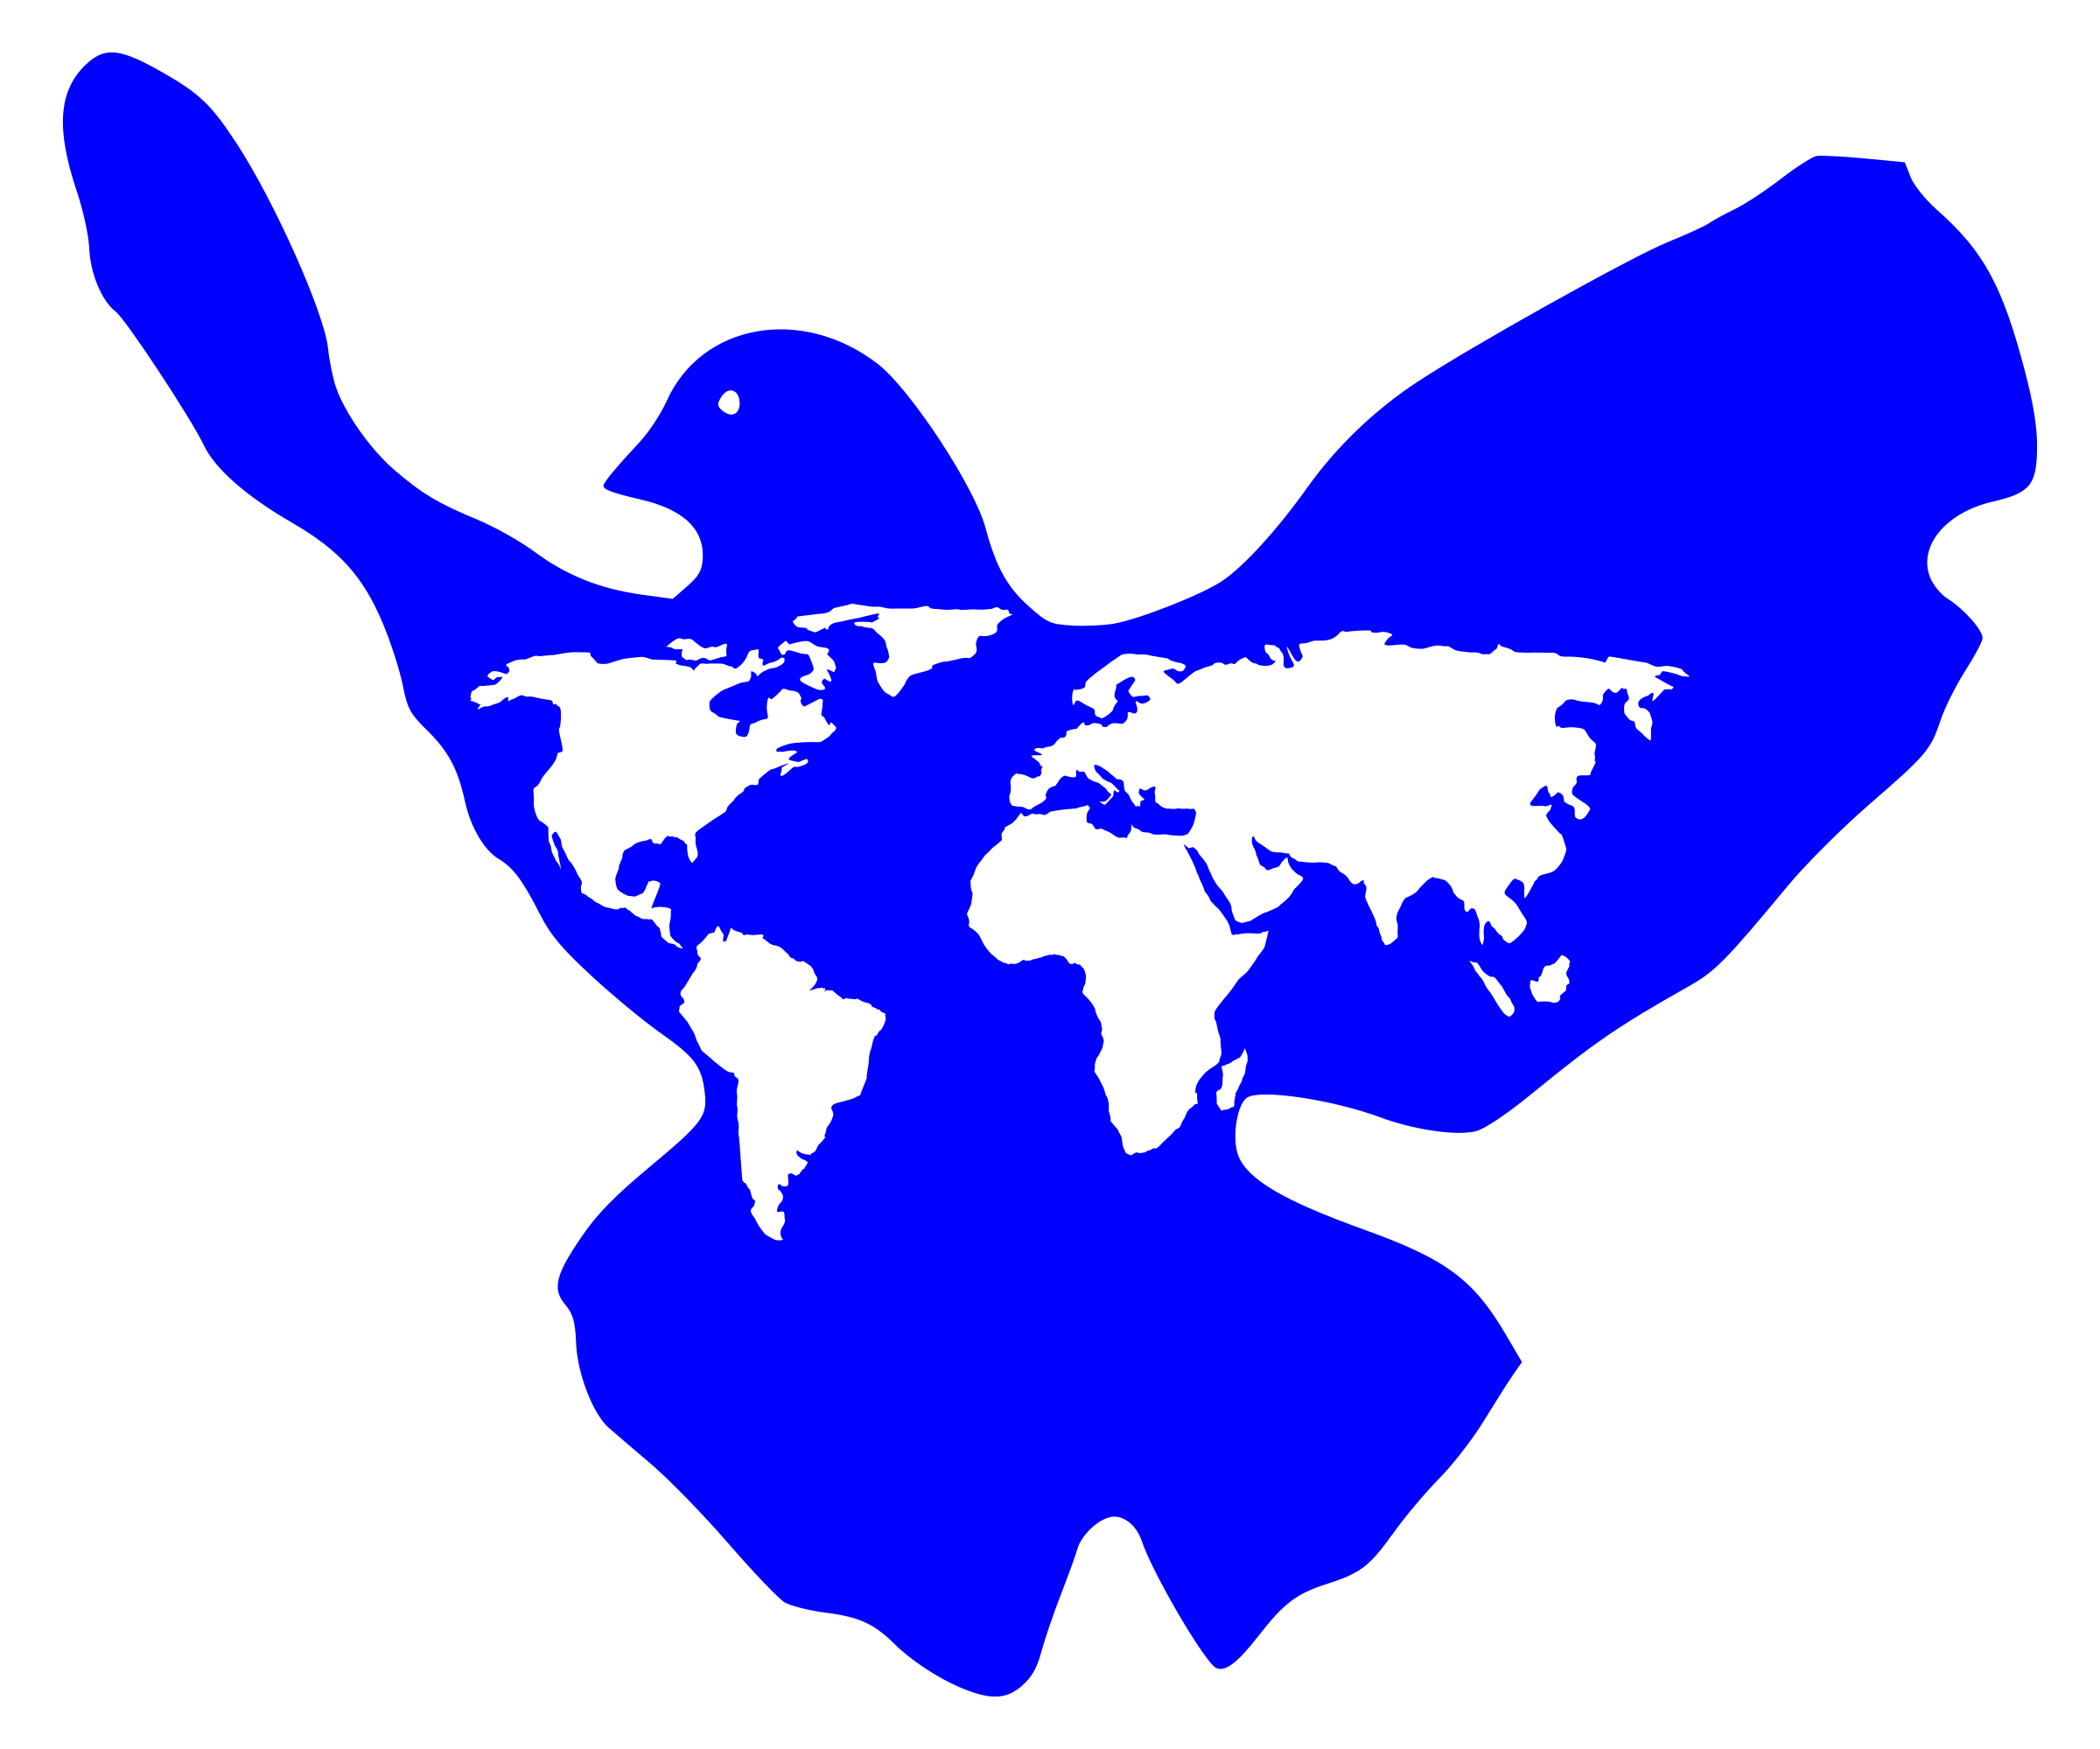 2400x1999 World Peace Dove Icons Png